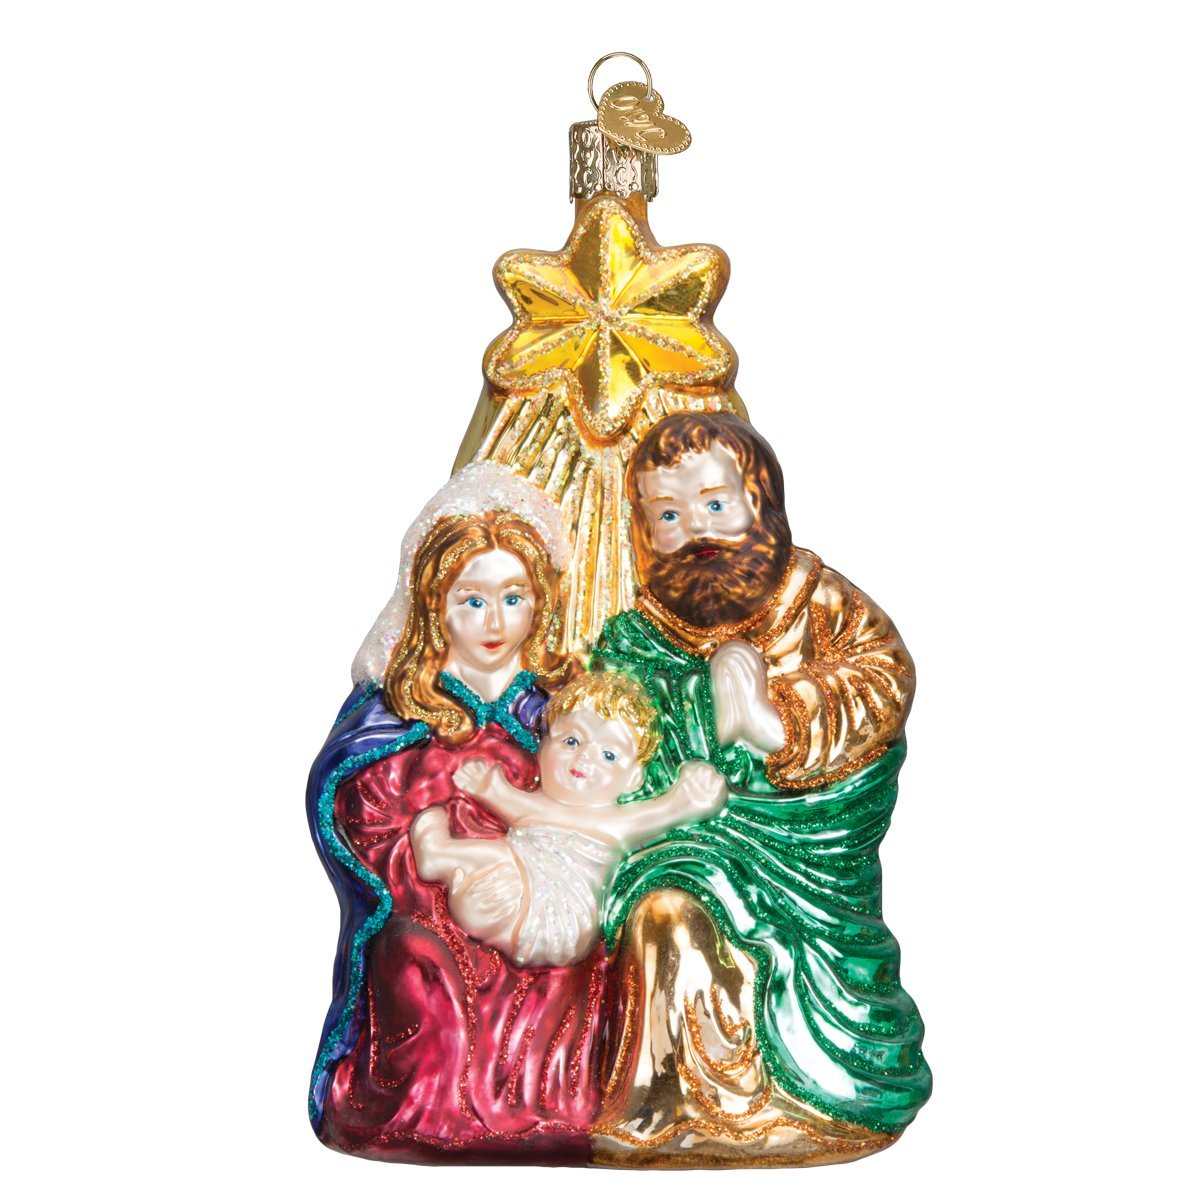 Old World Christmas Ornaments: Holy Family With Star Glass Blown Ornaments for Christmas Tree